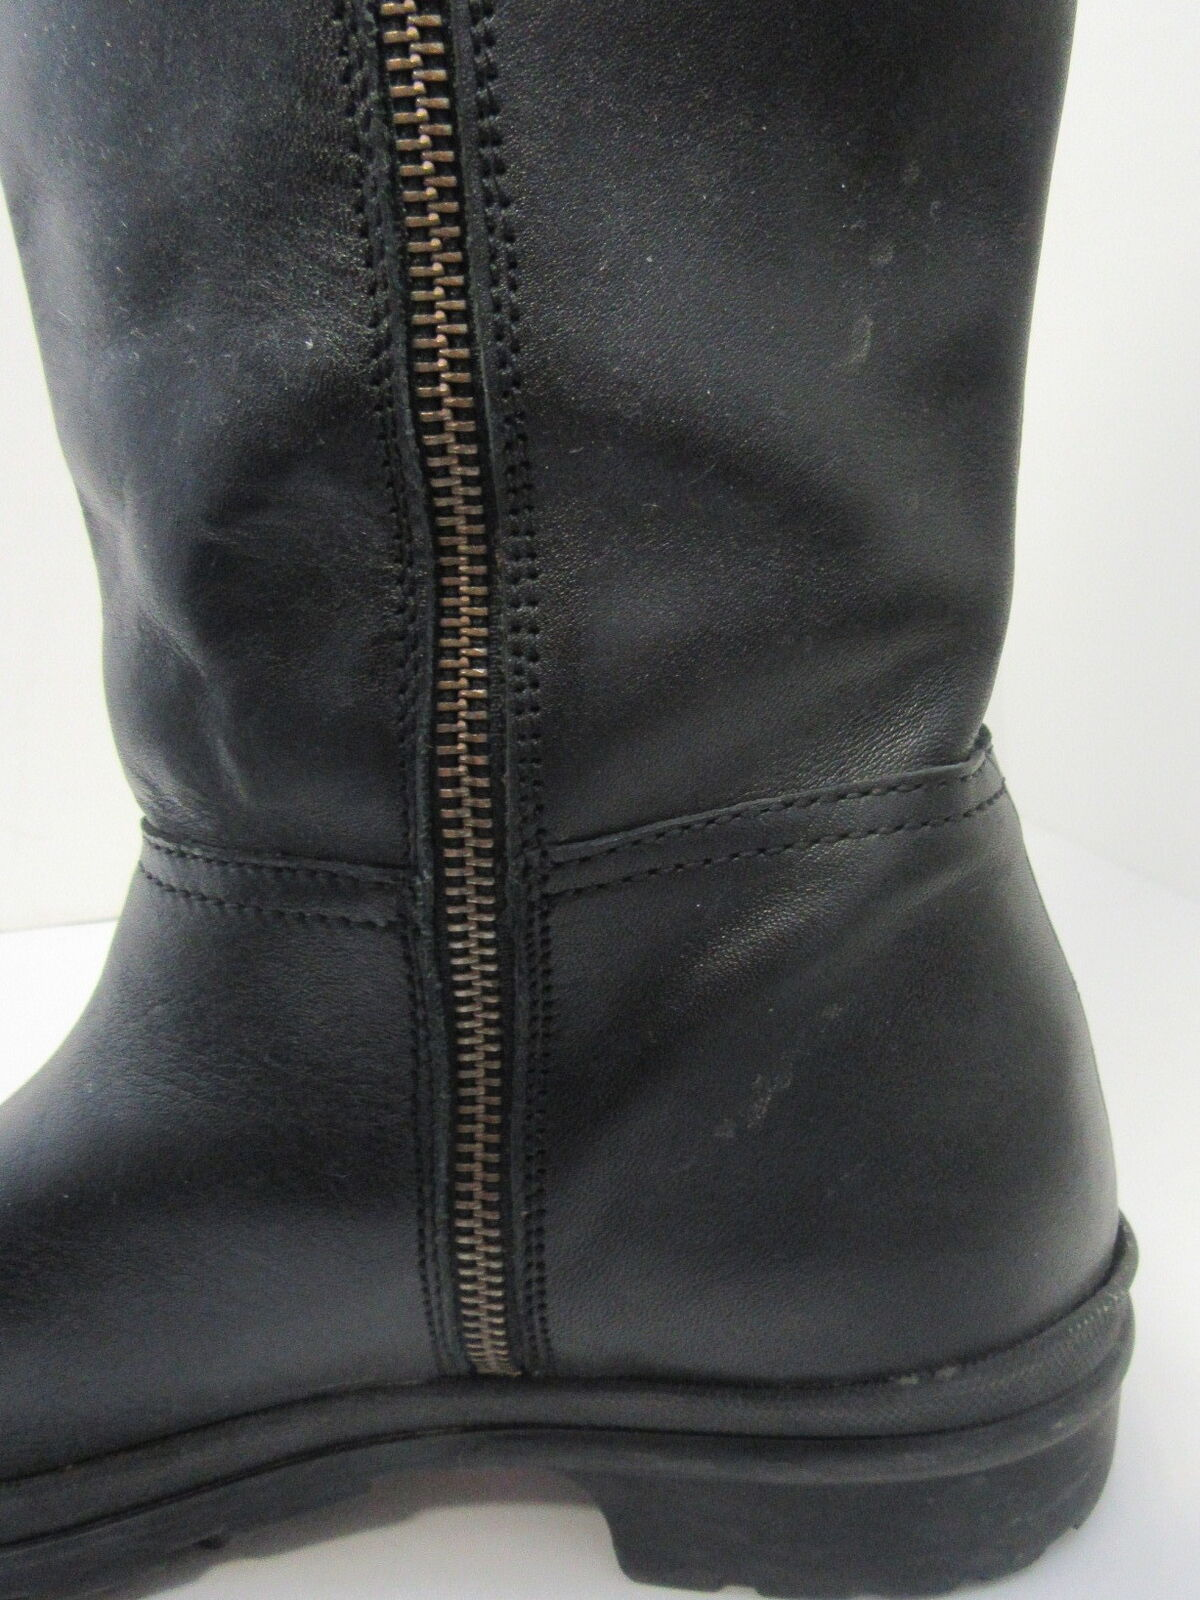 HUNTER BLACK AND BROWN LEATHER BOOTS WITH ZIPPER CLOSURE US US US 9.5 EUR 39.5 df30fa